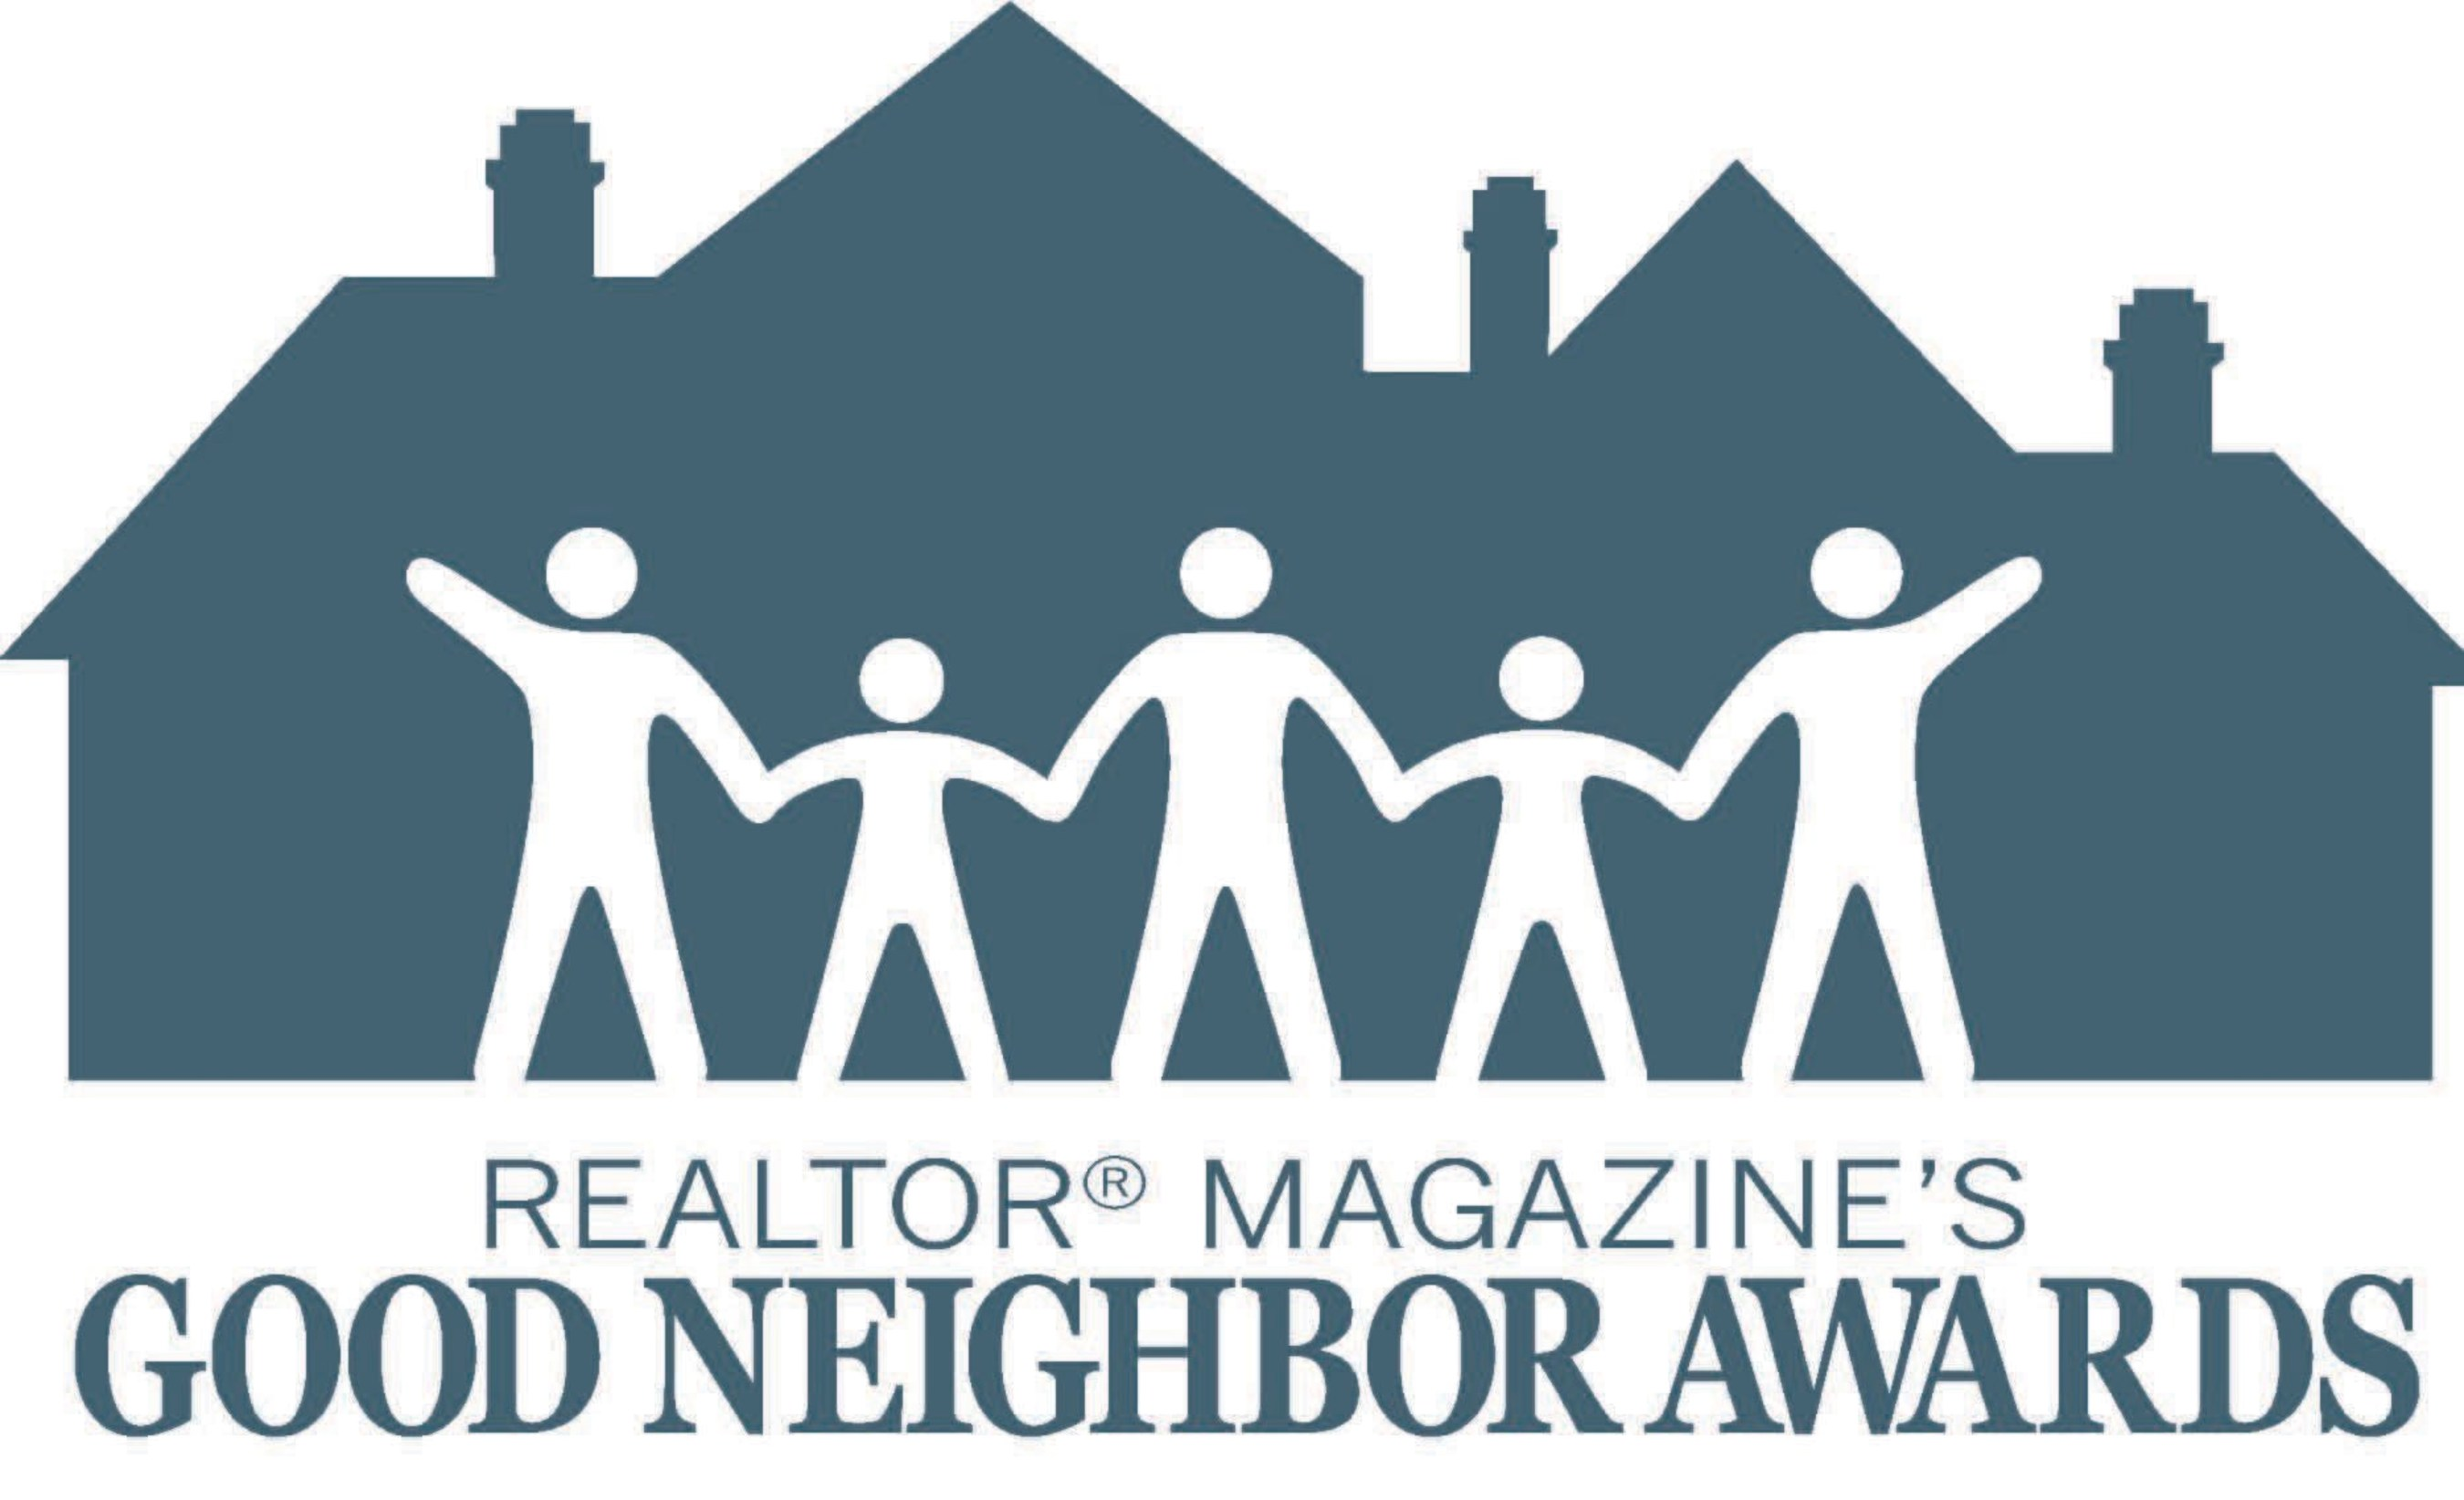 REALTOR(R) Magazine's Good Neighbor Awards recognize REALTORS(R) who have made an extraordinary impact on their community, or on the national or world stage, through volunteer work.